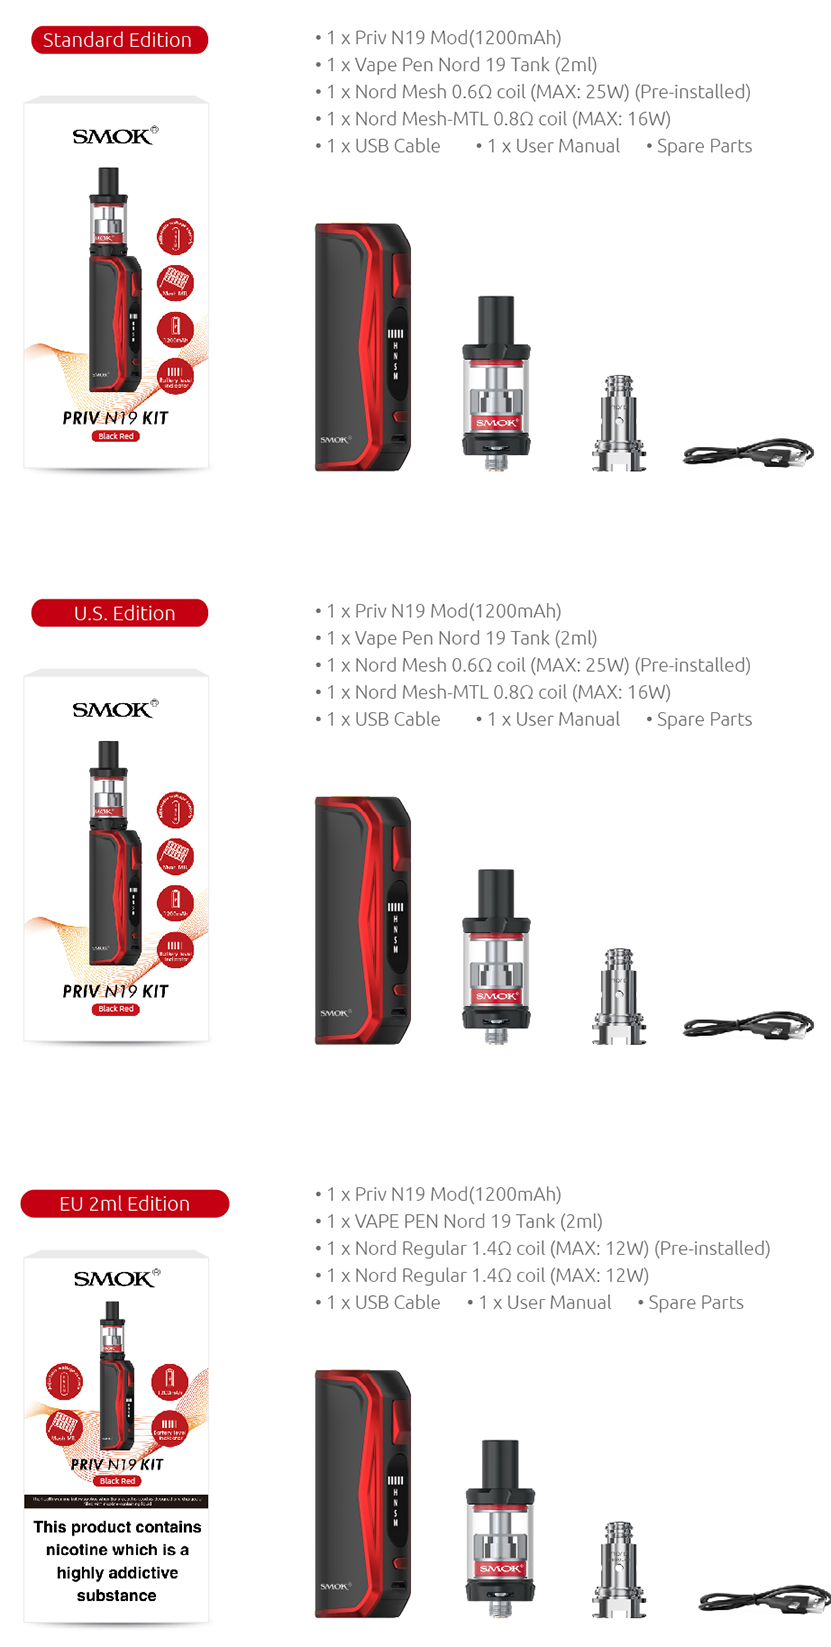 SMOK Priv N19 Kit Features 01